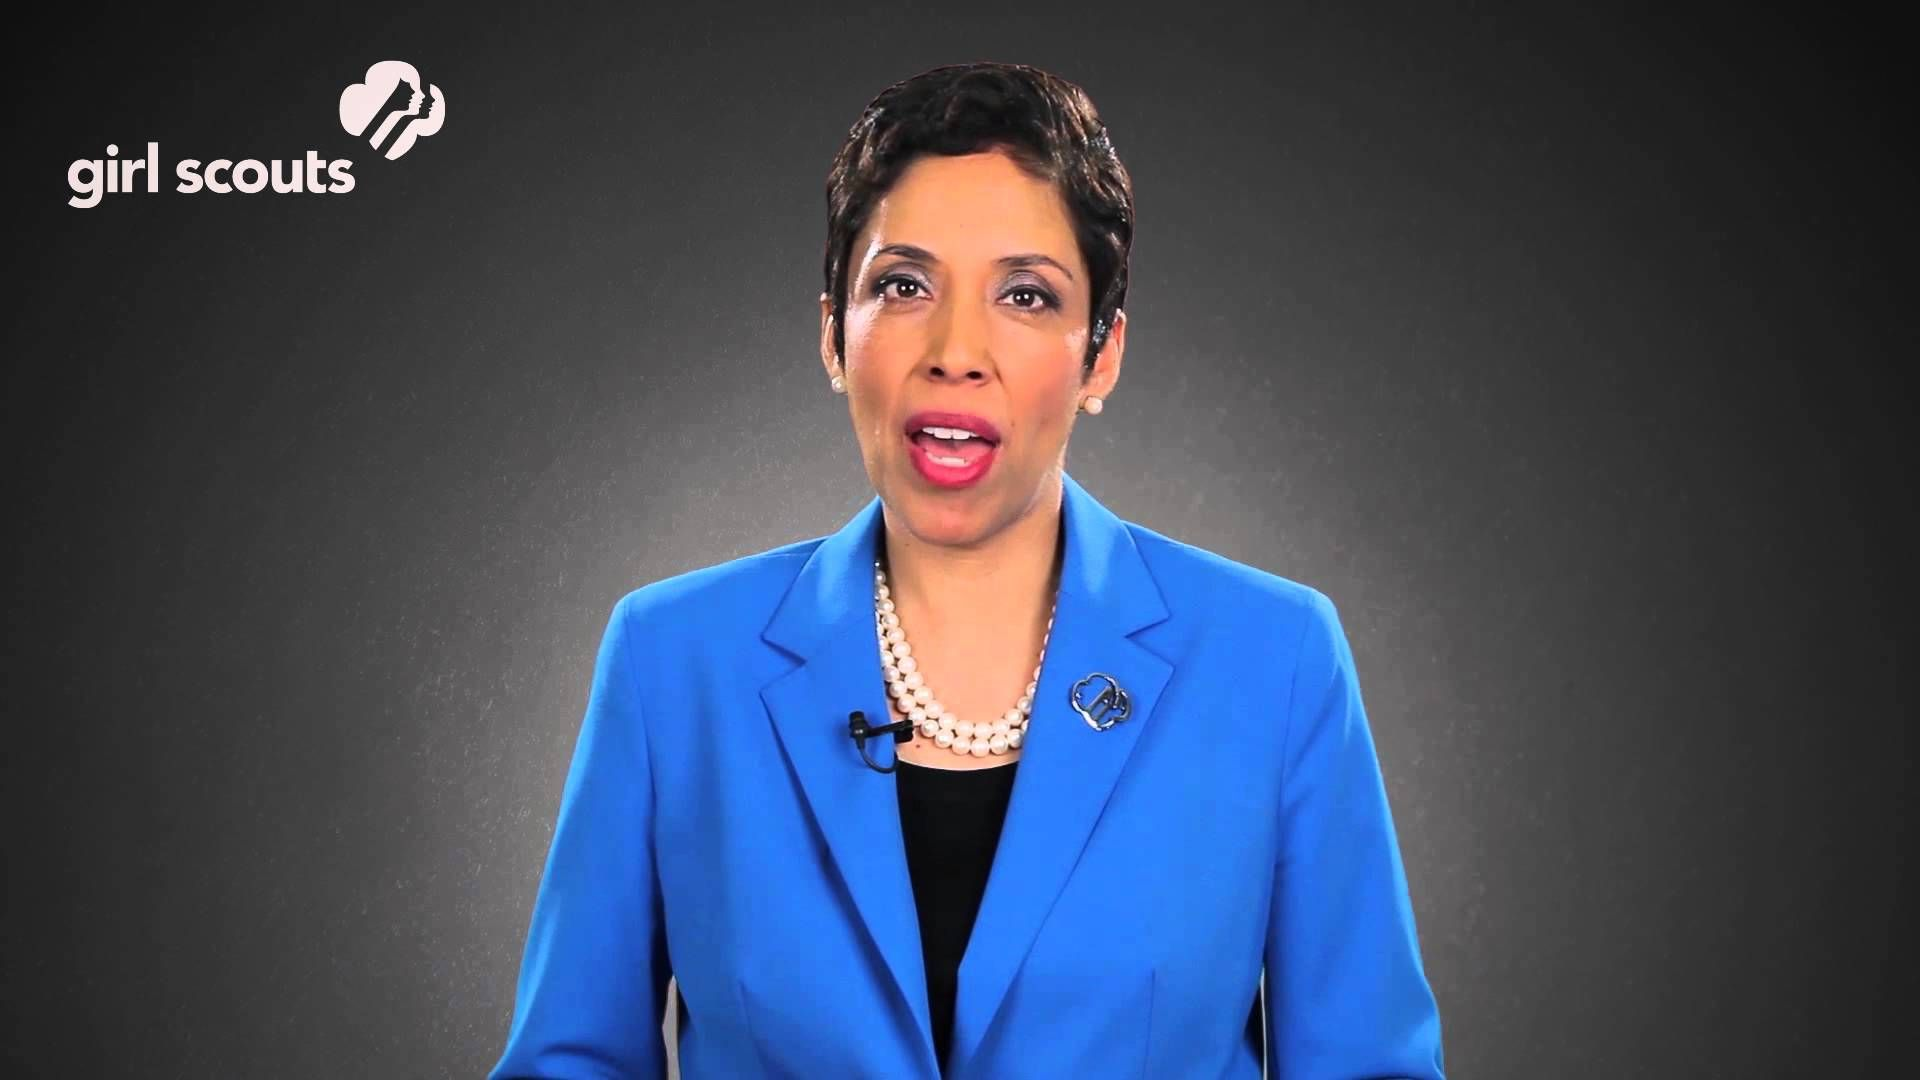 Girl Scouts of the USA CEO Anna Maria Chávez is proud to stand strong with Girl Scouts across the country in a new video where she sets the record straight on recent misconceptions about the organization.